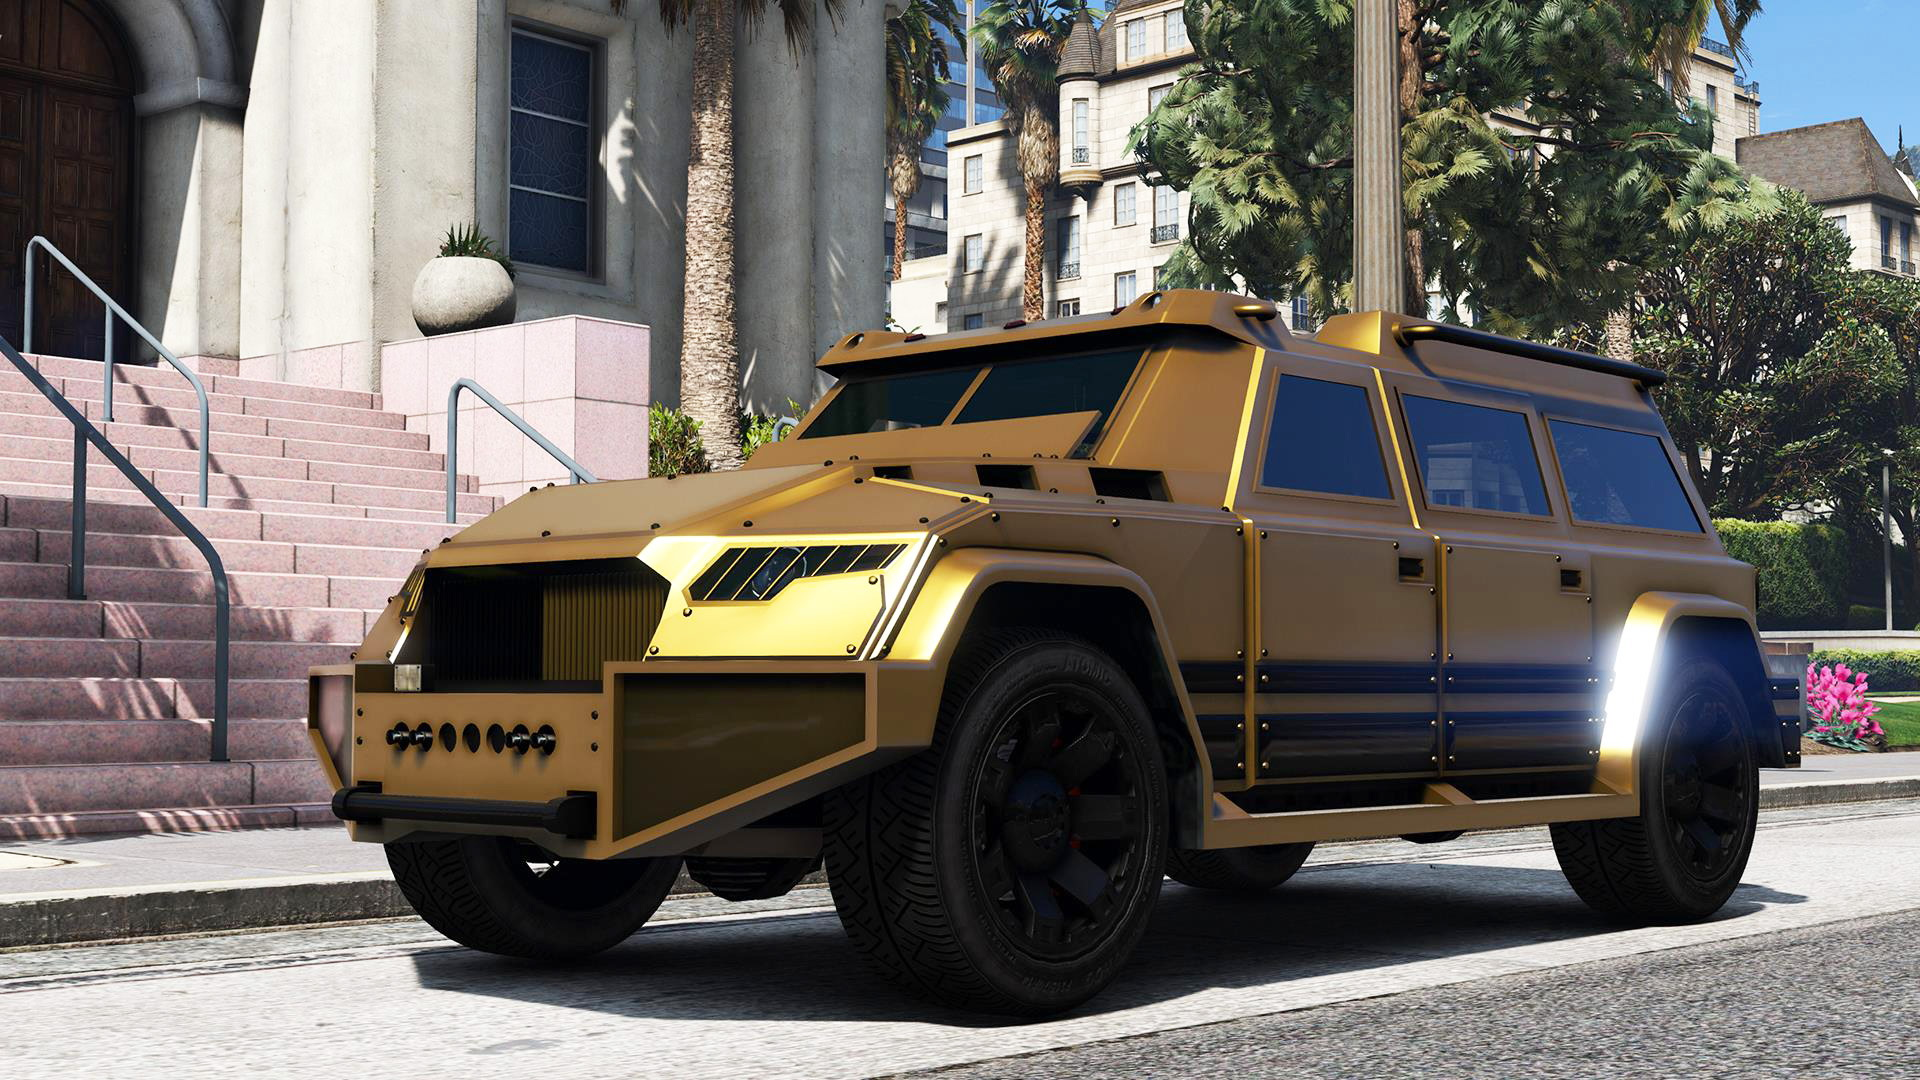 Dartz resembling HVY Nightshark in 'Grand Theft Auto V'